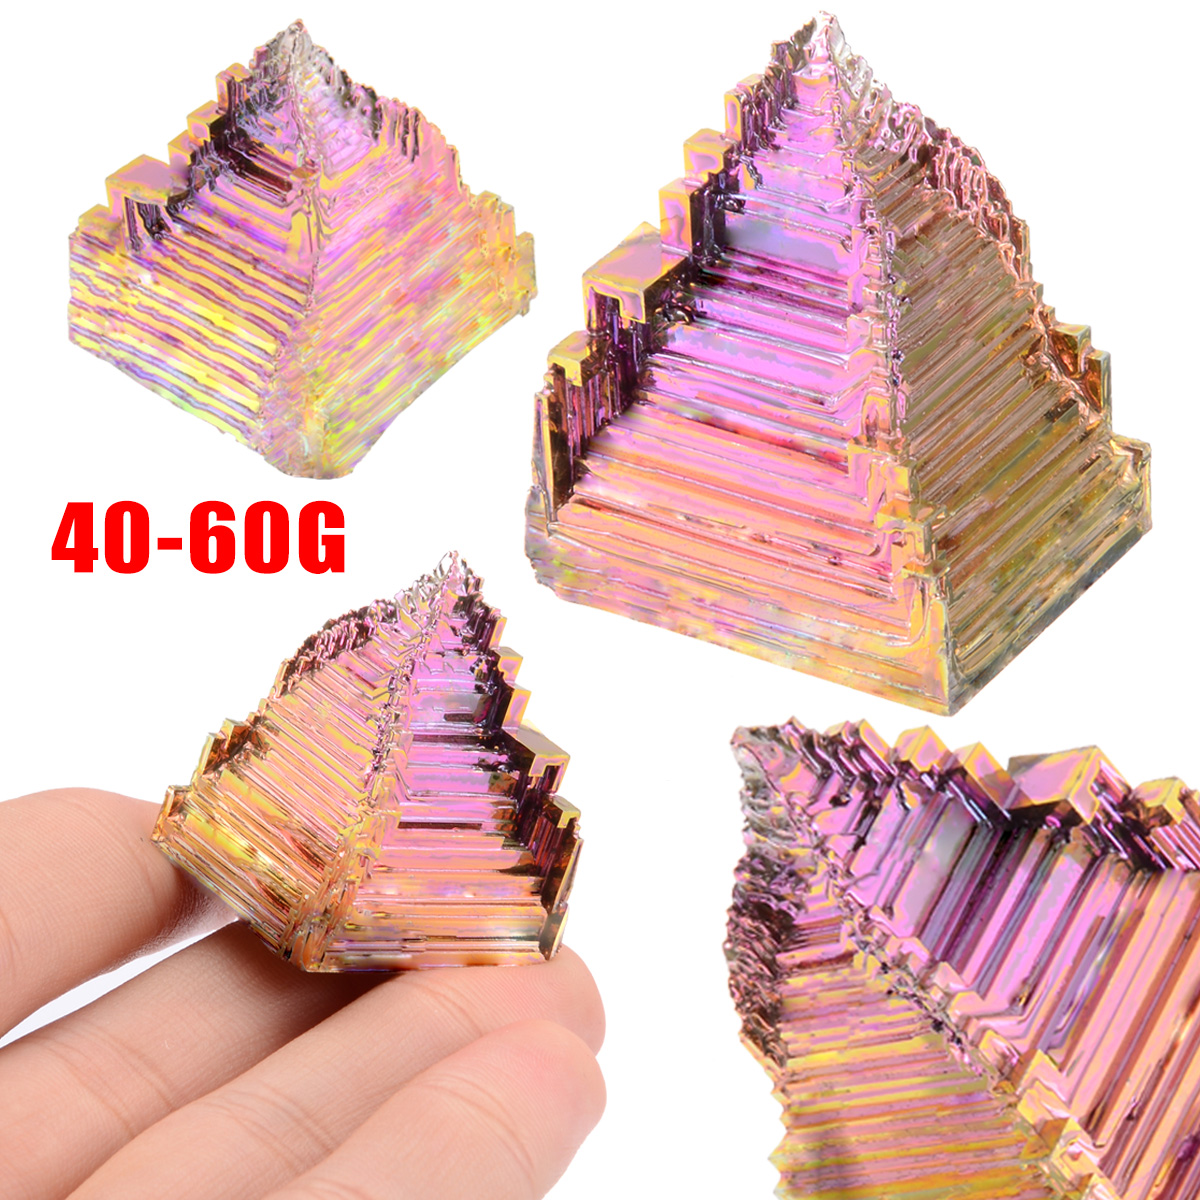 40-60g Colorful Bismuth Crystals High Purity Bismuth Metal Crystal Specimen For Bismuth Crystals High Quality